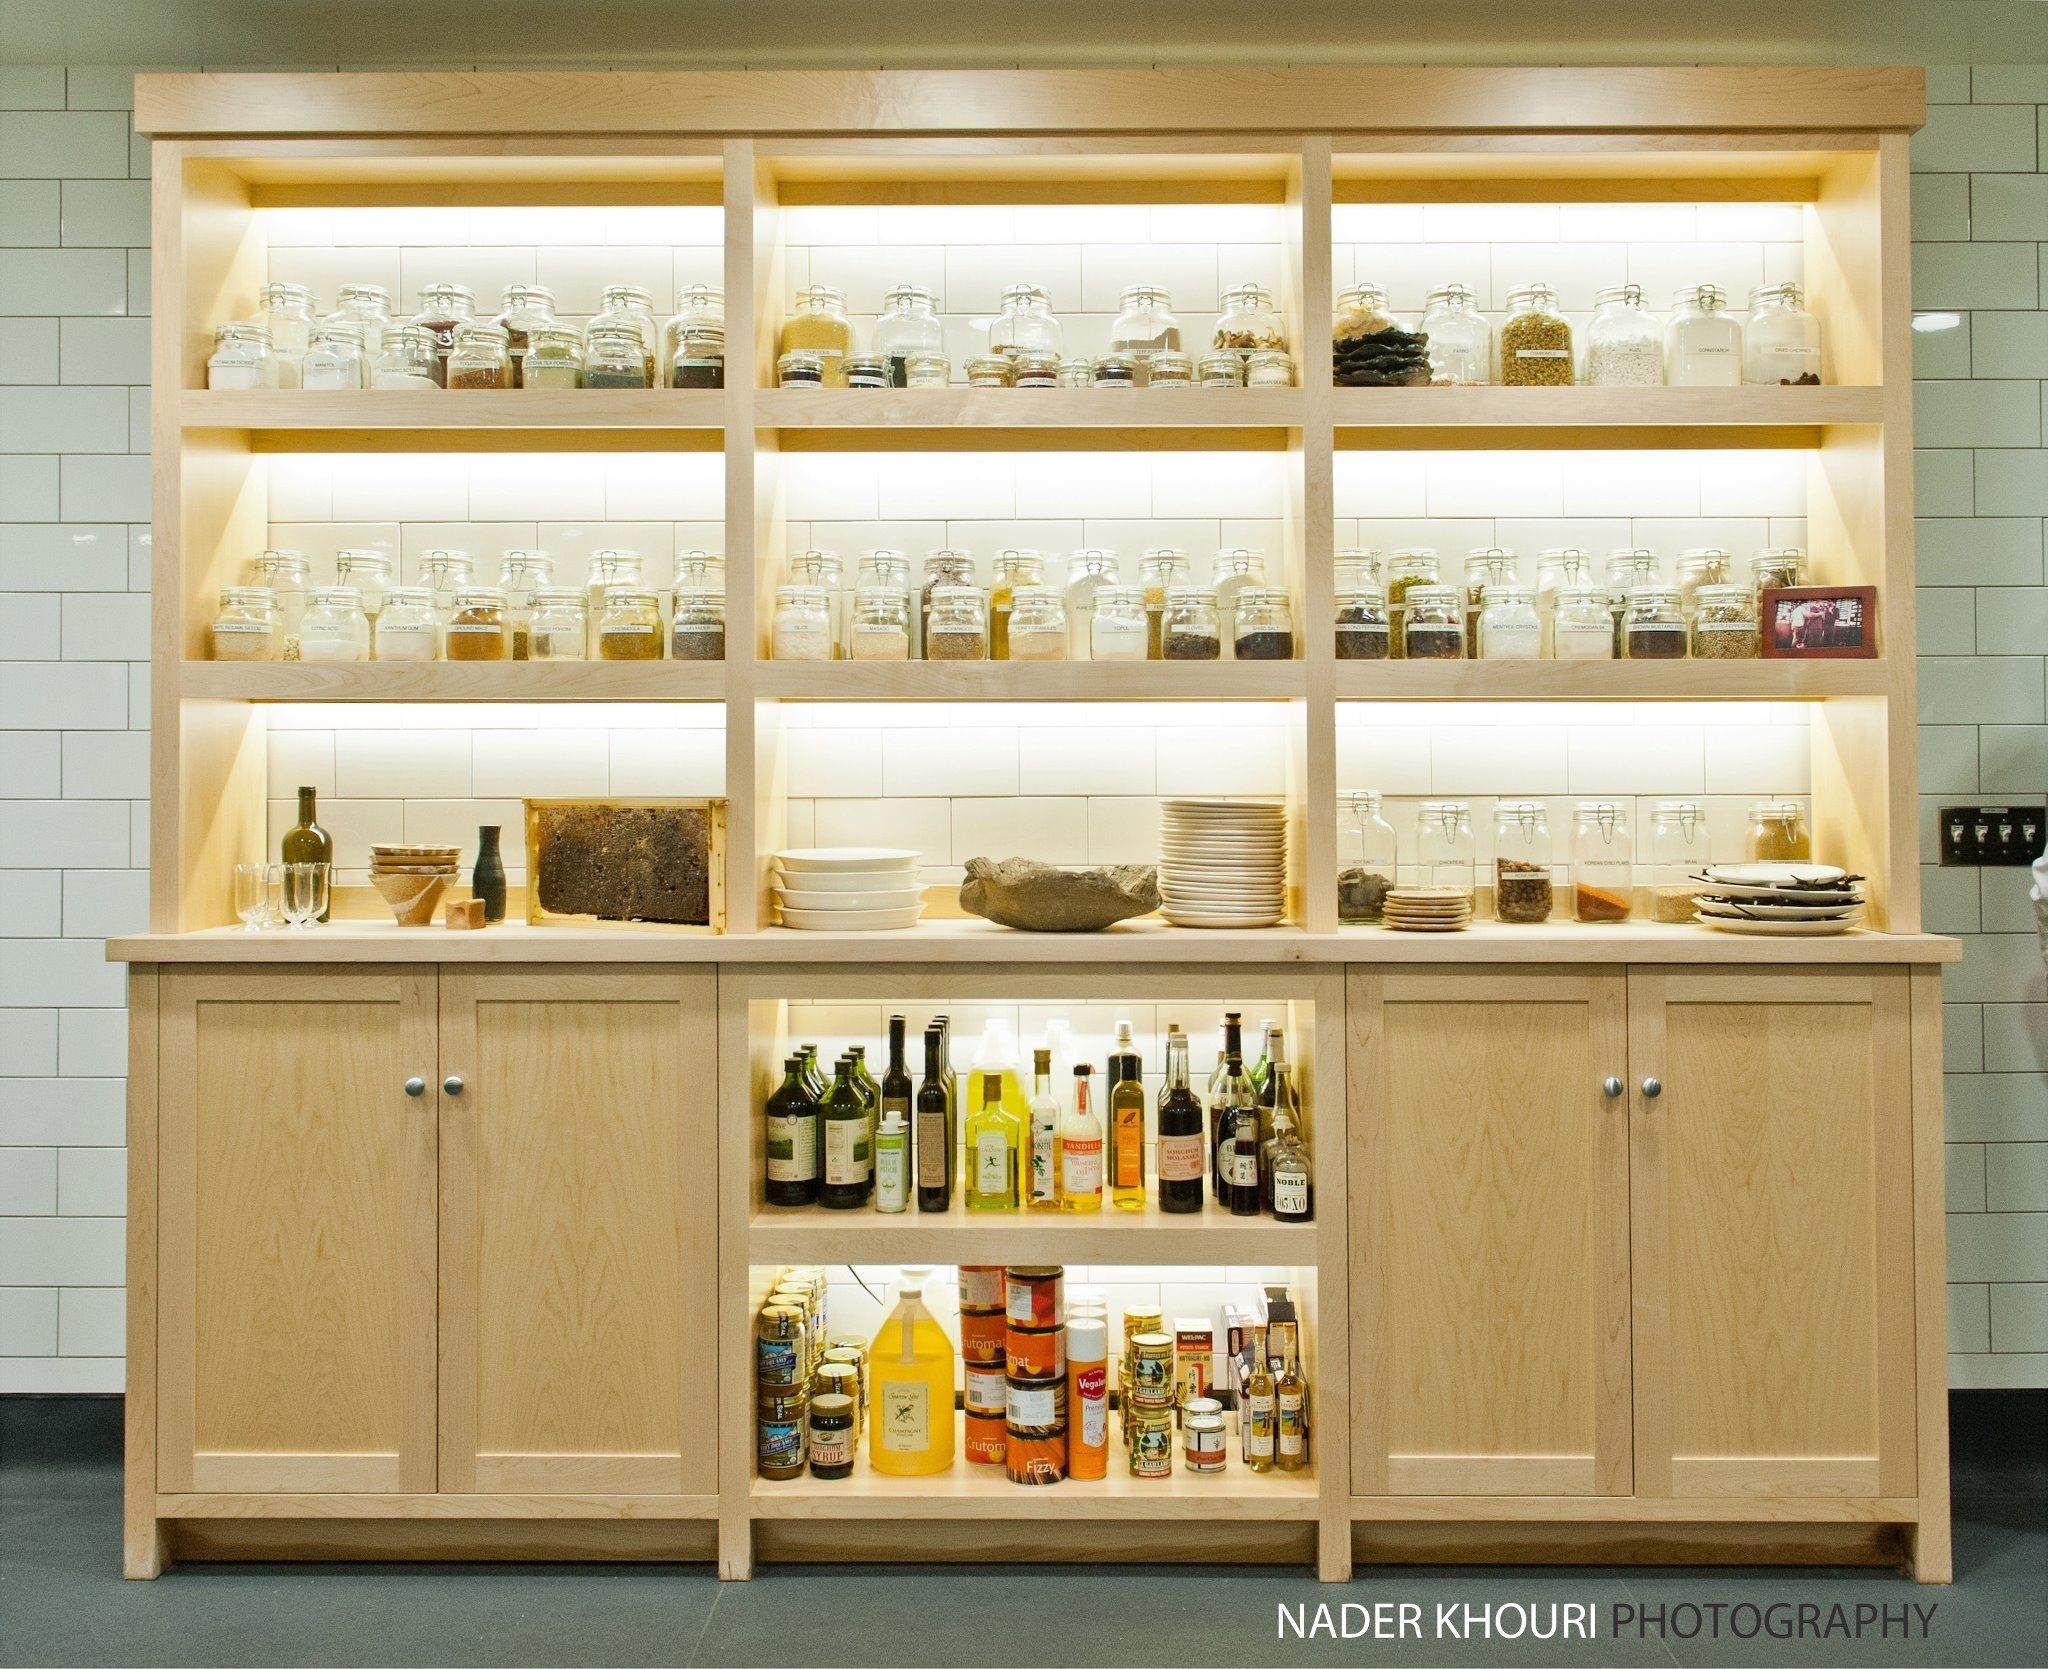 All Cooks Dream Realized In The New Kitchen At Meadowood: I Want This I'm My Kitchen. Beautiful, Open, Lit Cabinet